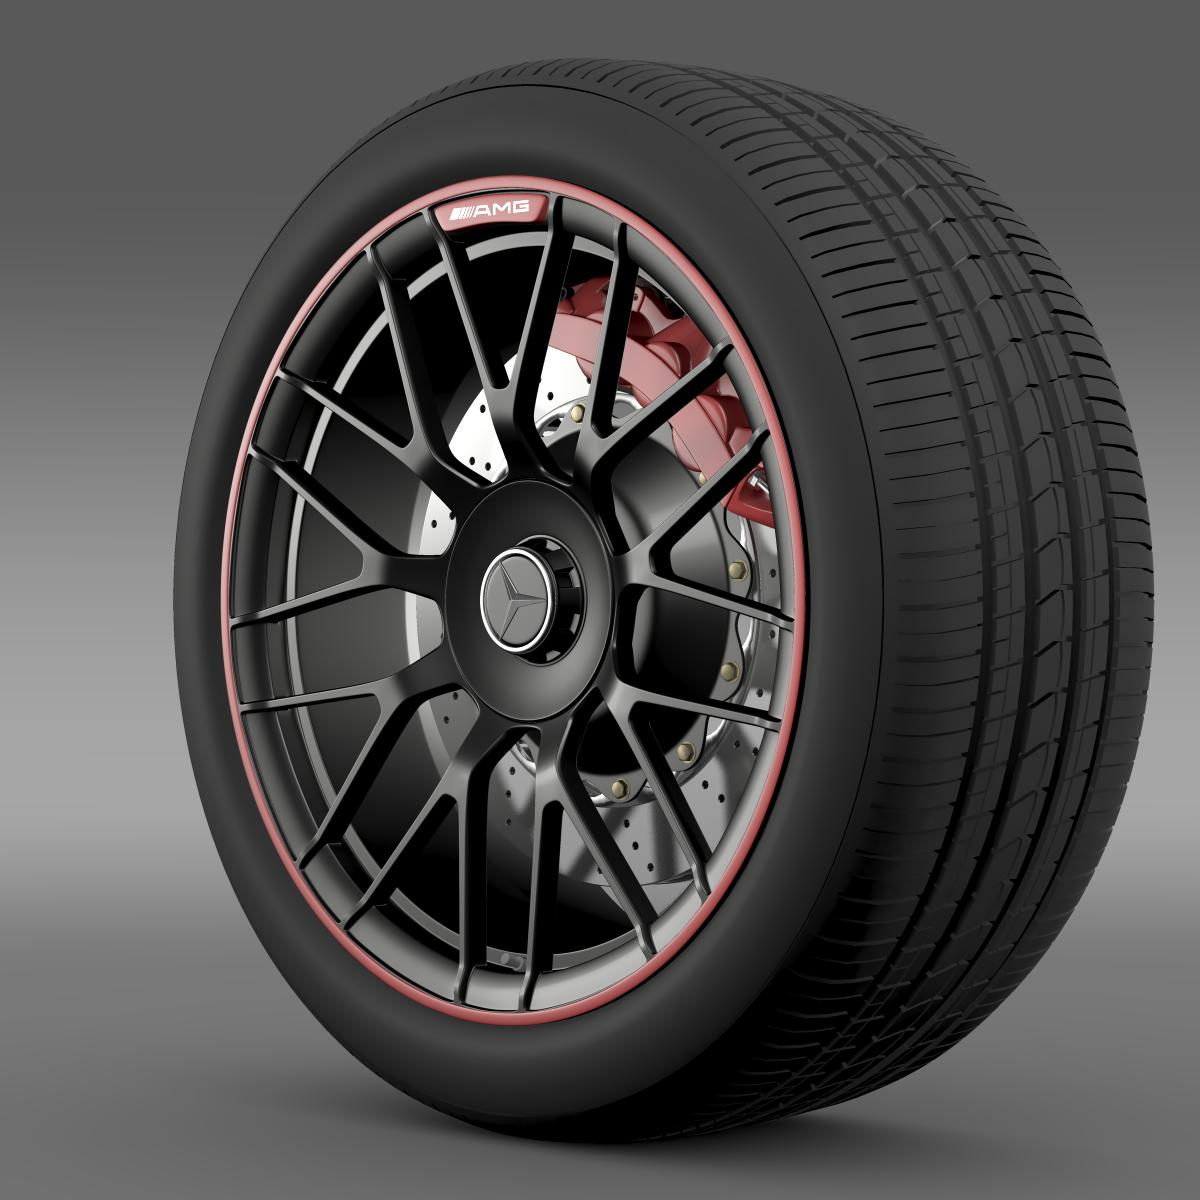 mercedes amg c 63 s edition wheel 3d model 3ds max fbx c4d lwo ma mb hrc xsi obj 210742